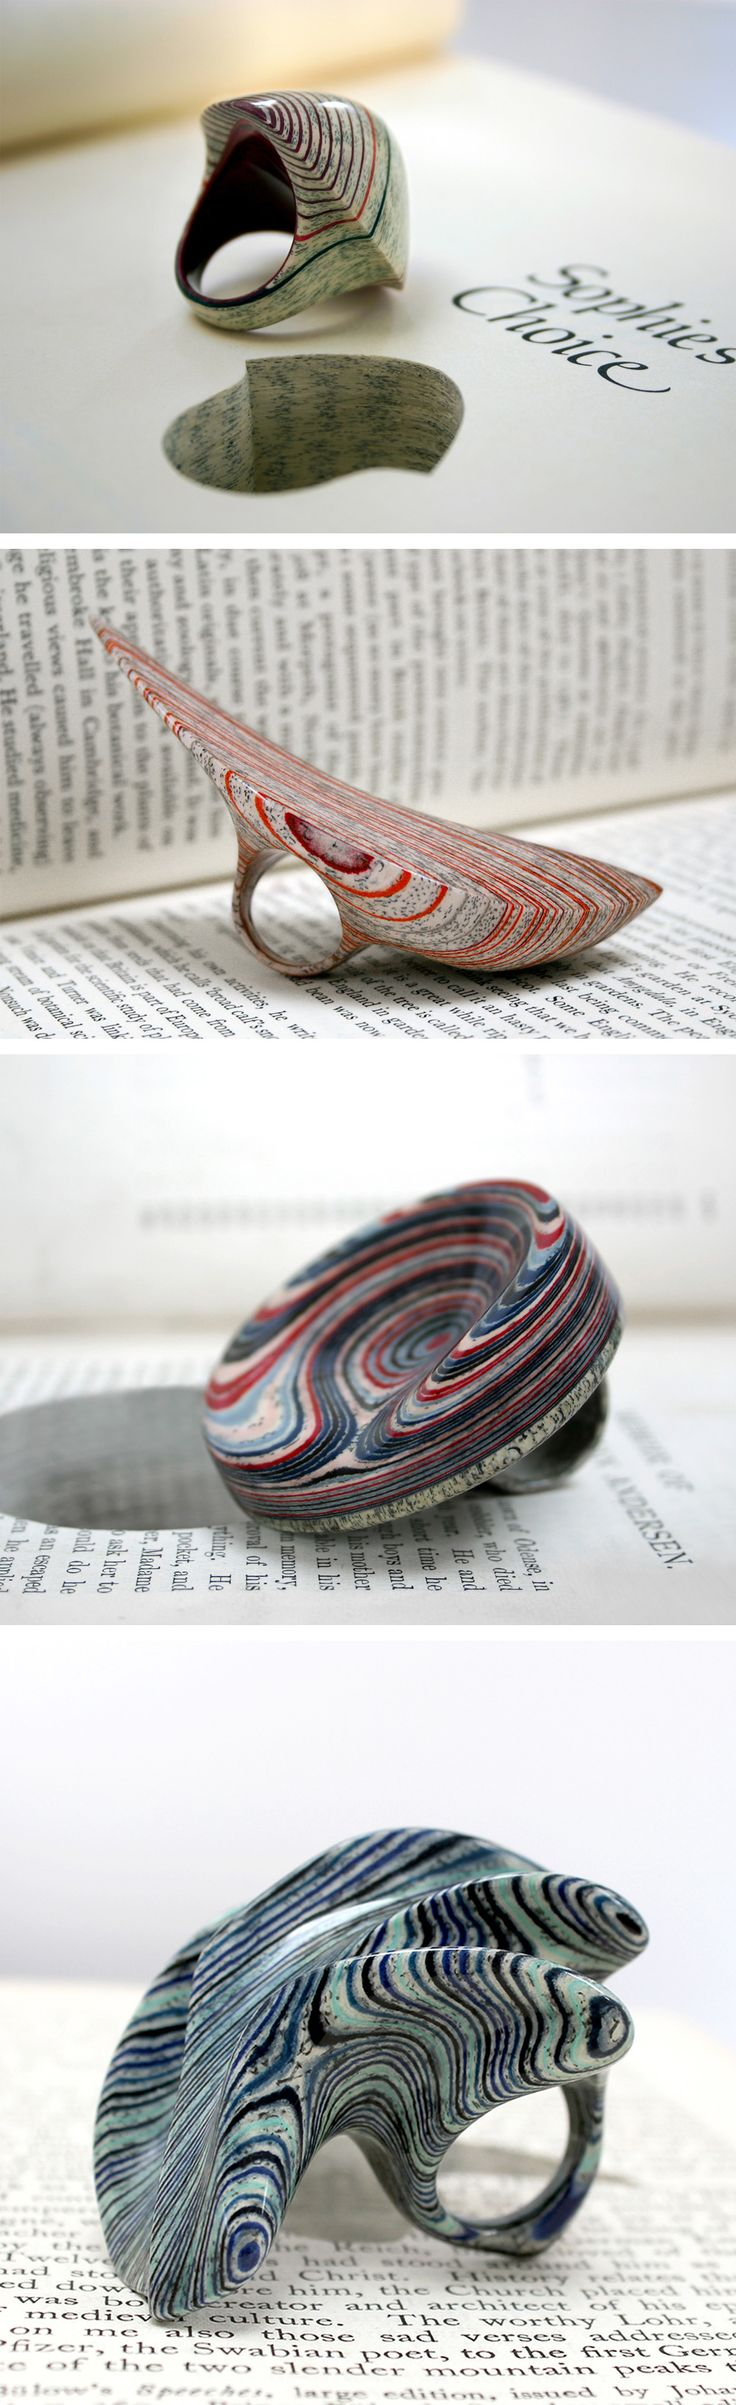 Laminated Jewelry Crafted from Vintage Books by Jeremy May